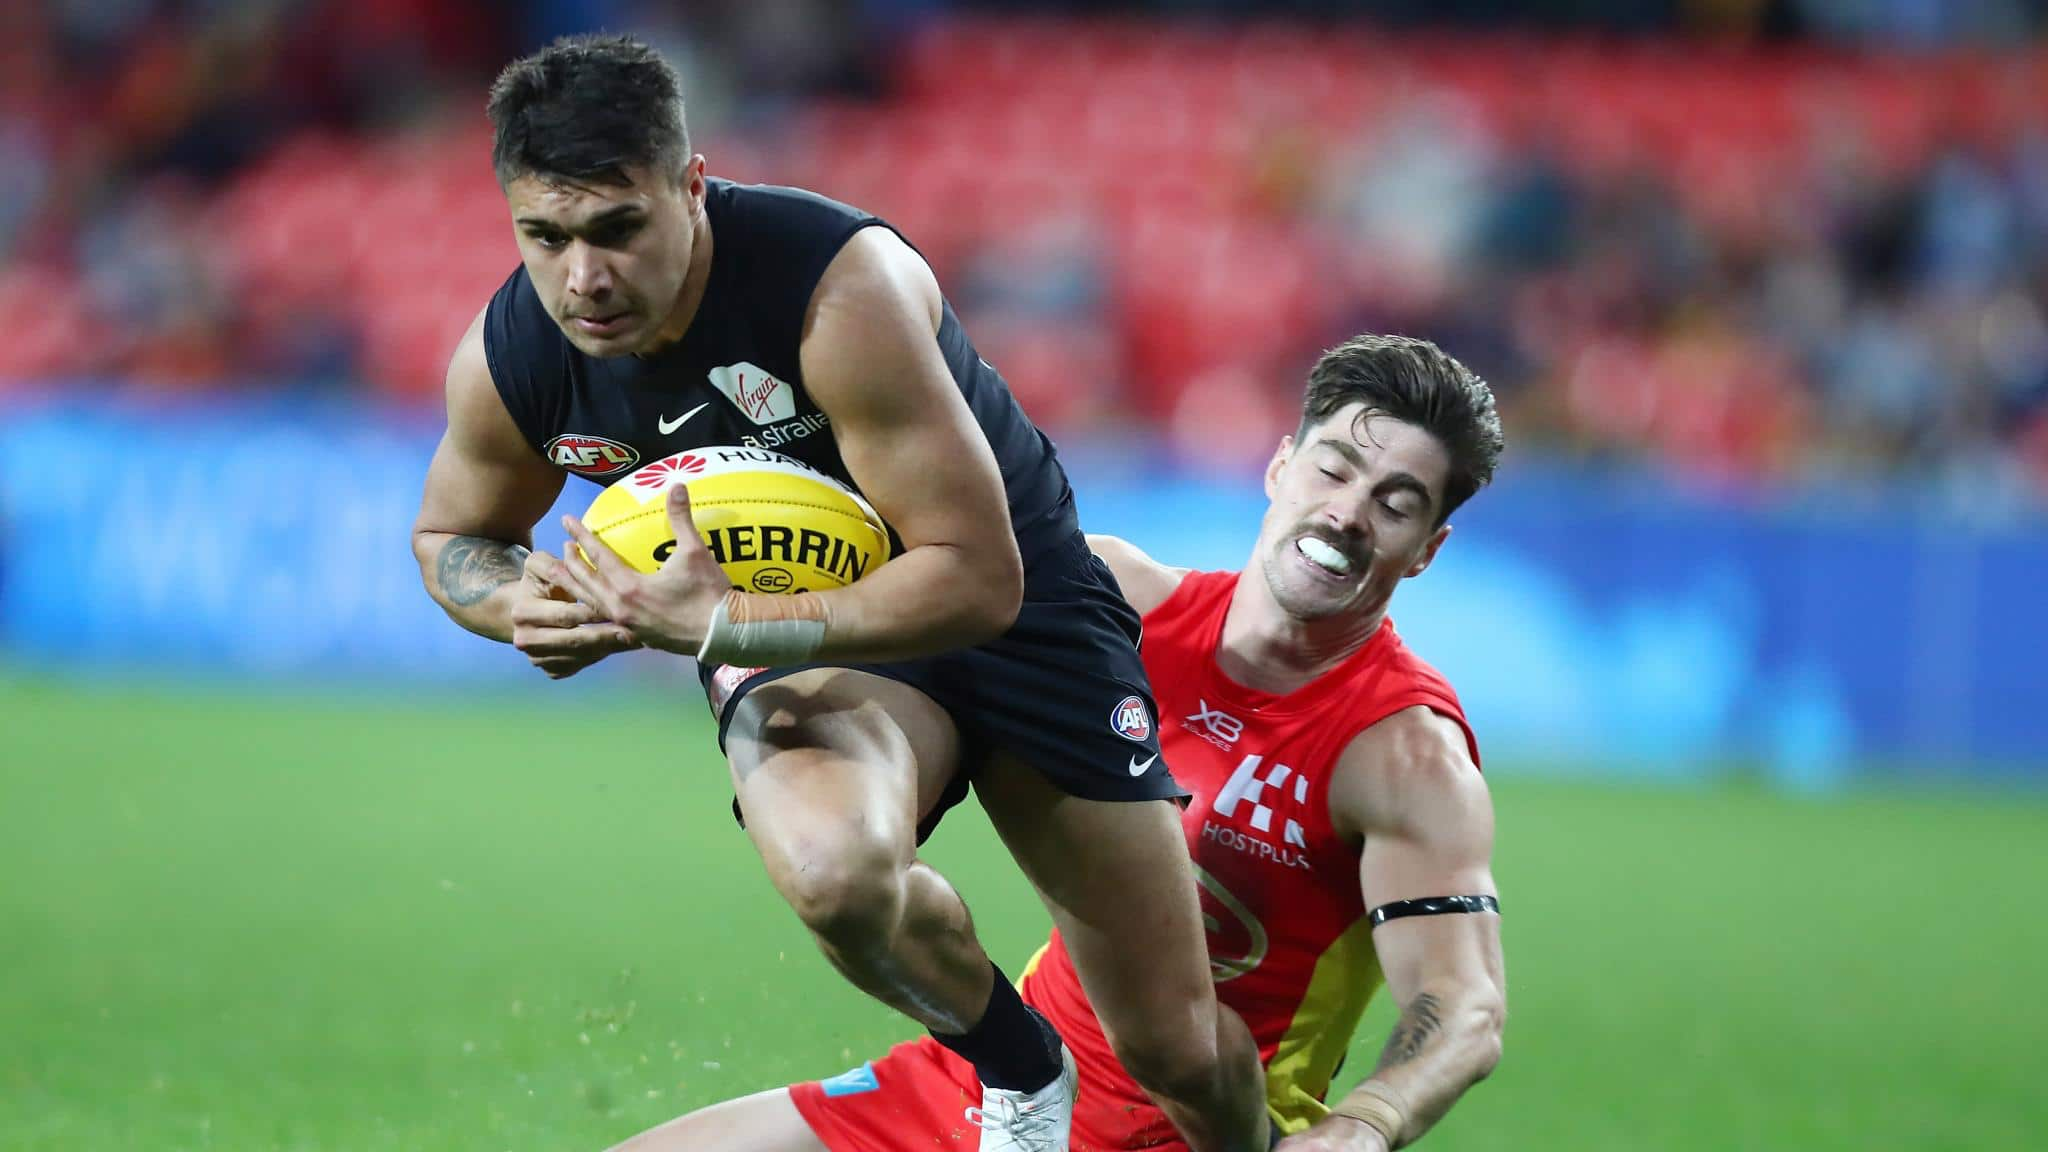 Carlton and former top-five draft pick agree 'to part ways'